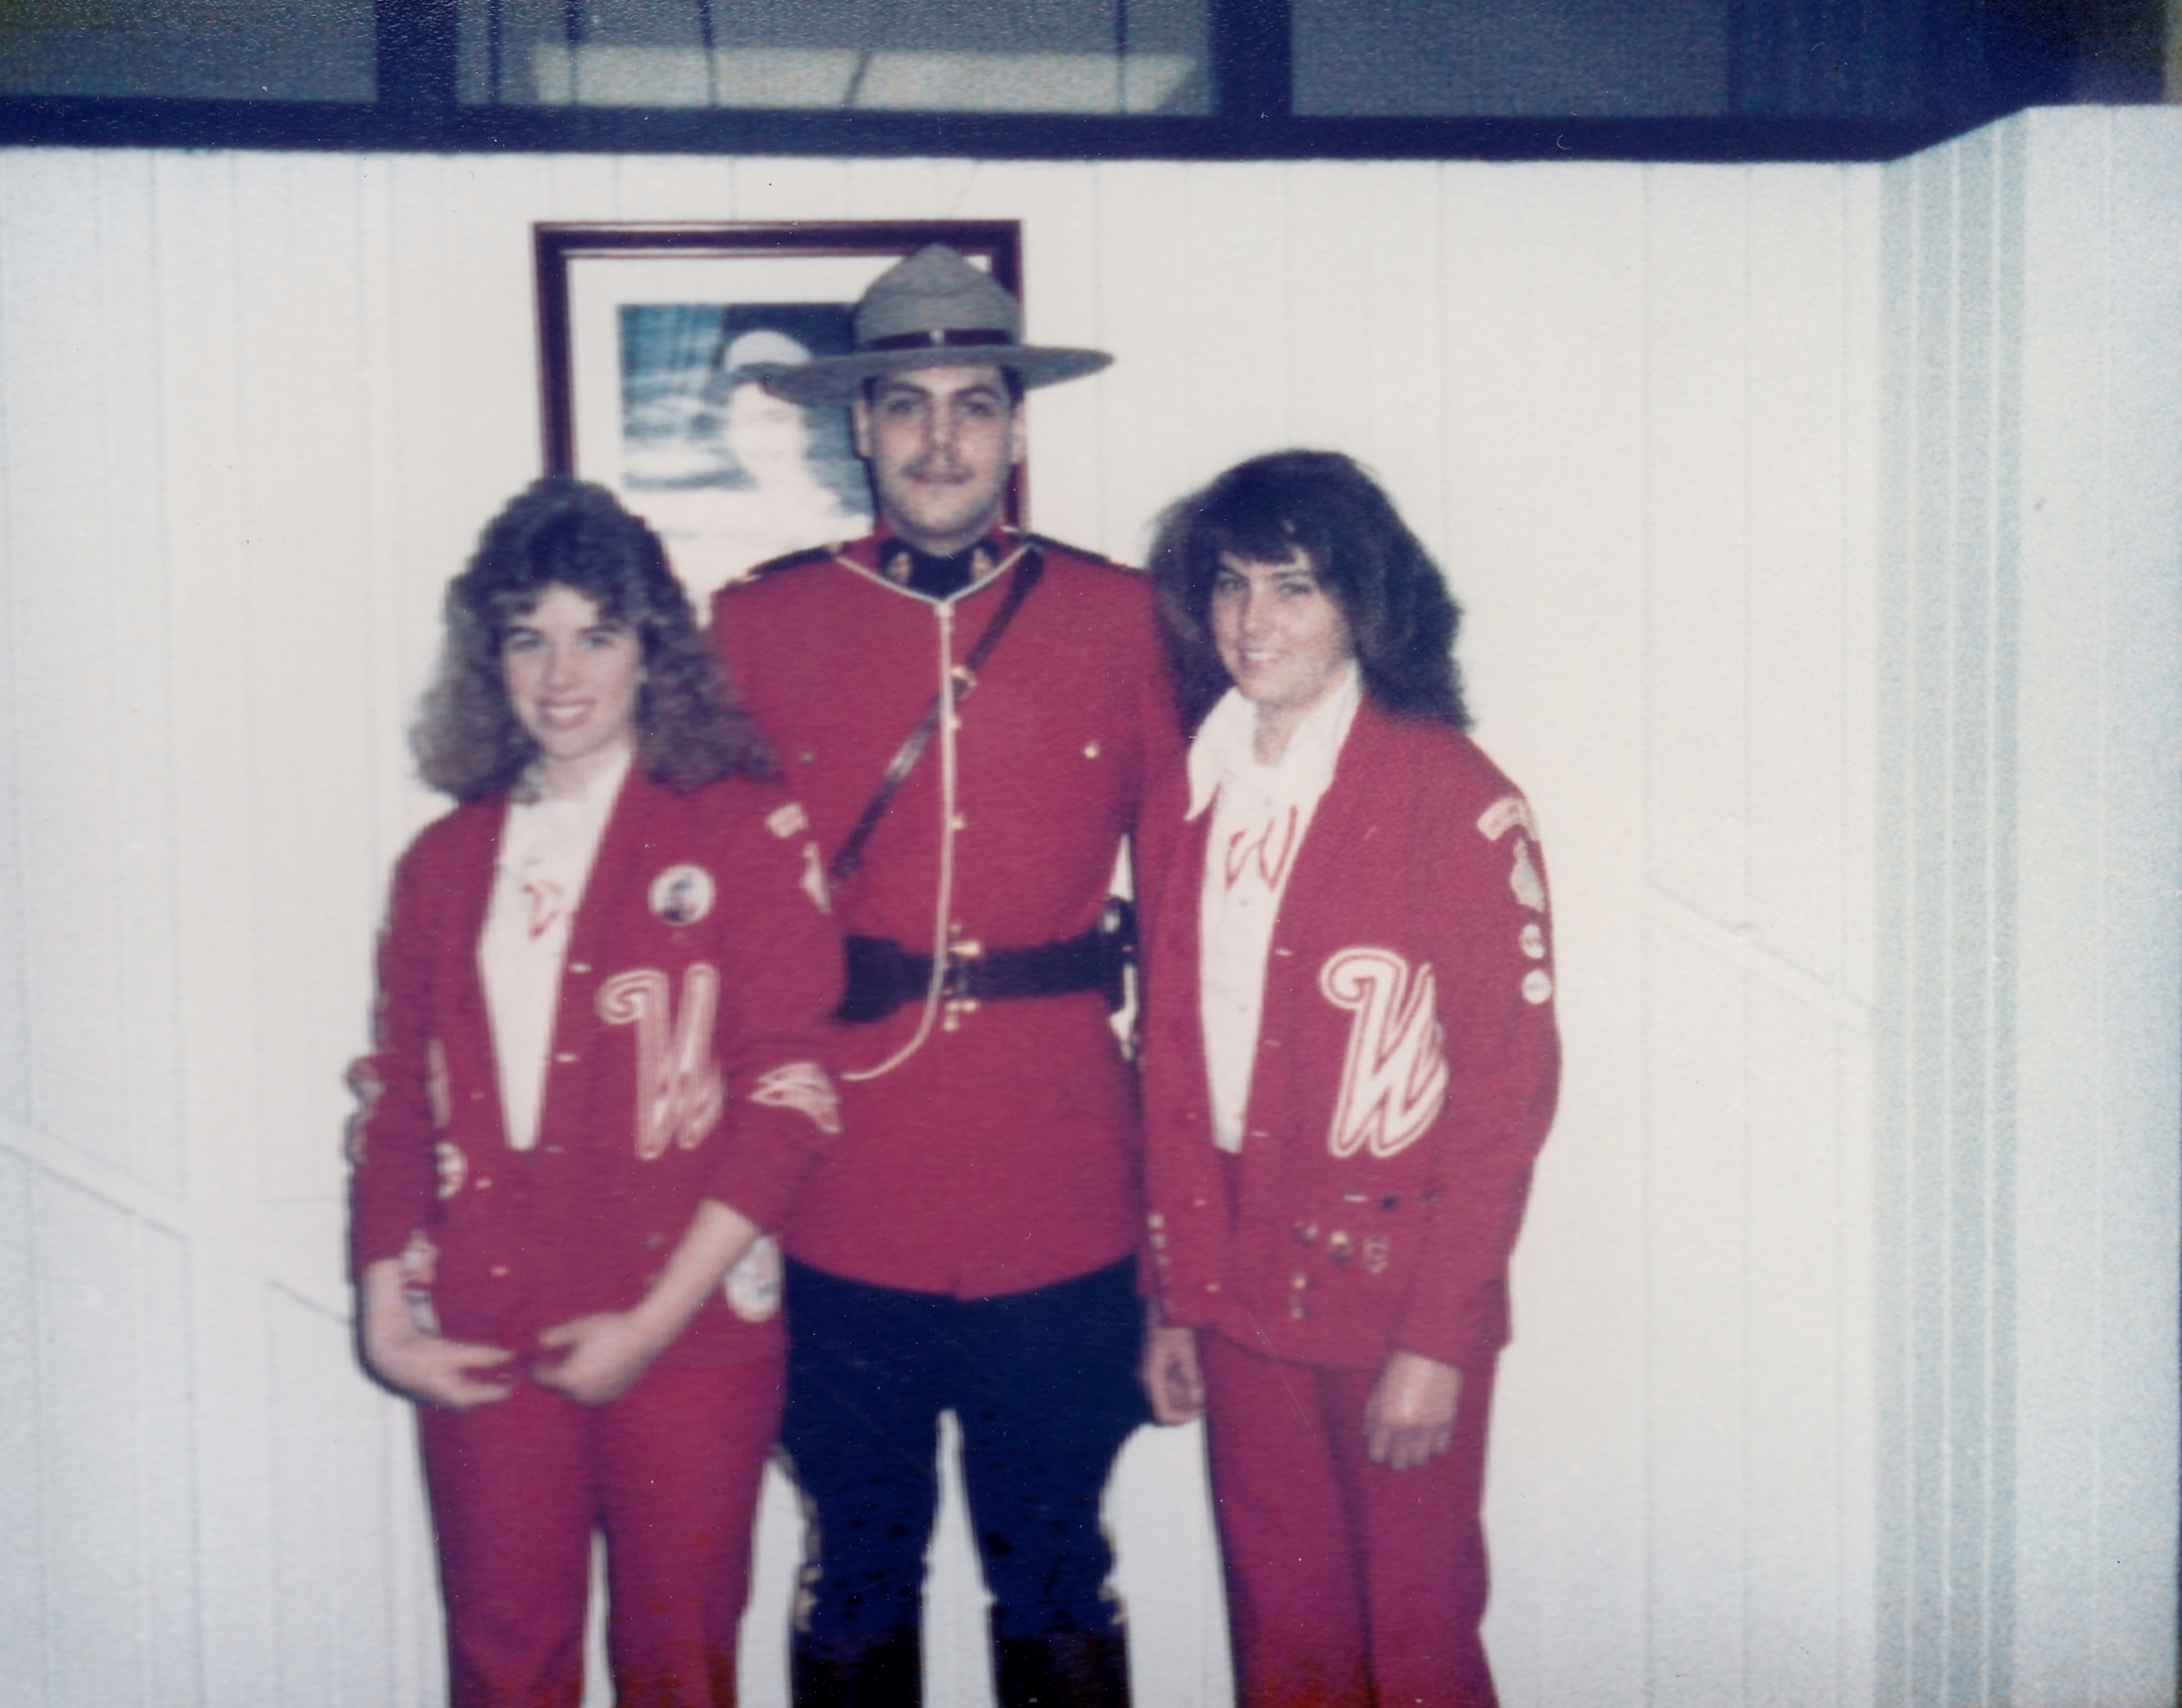 Varsity Red Team riders Shelley Underwood (left) and Chris Padilla (right) pose with with a Mountie